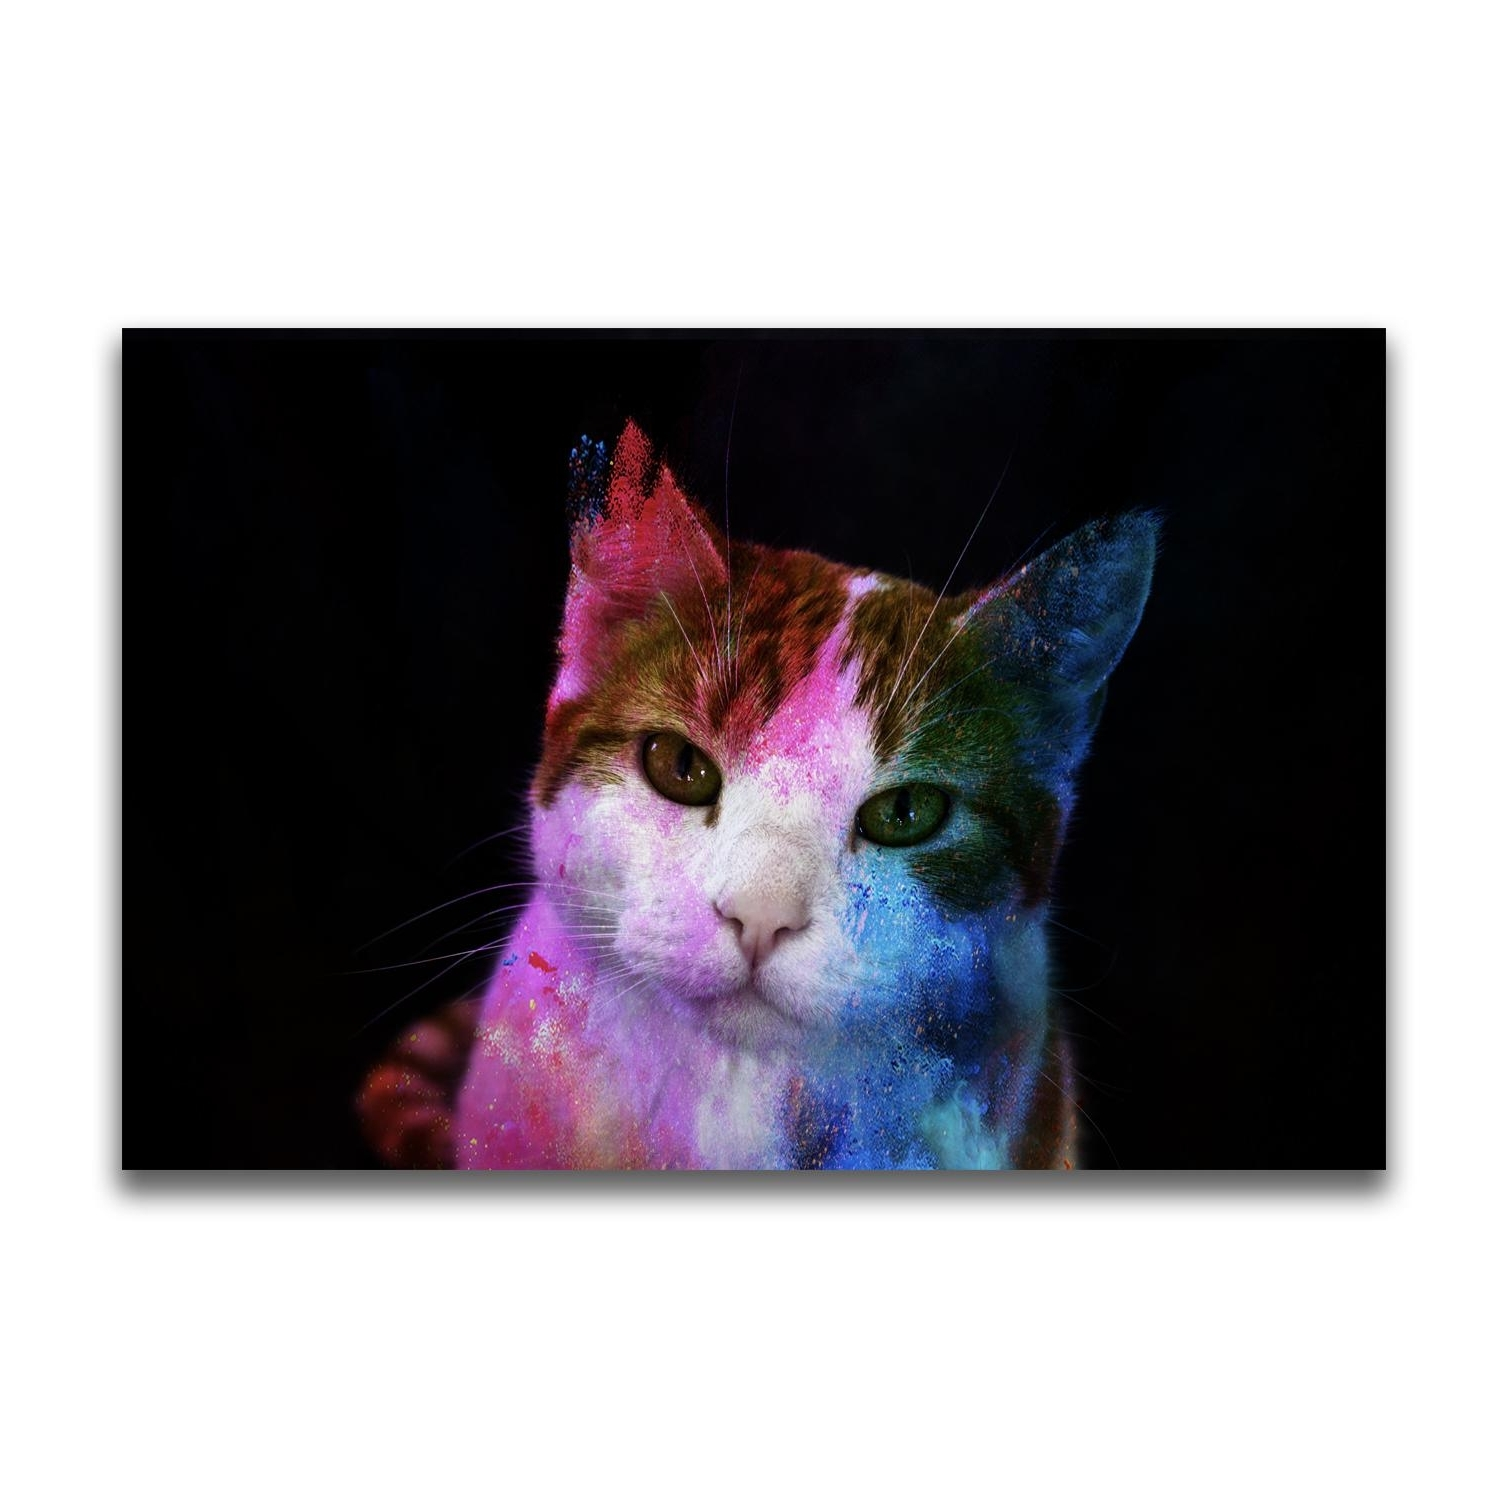 Yj Art A Colorful Cat Unframed Modern Canvas Wall Art For Home And Inside Well Known Cat Canvas Wall Art (View 7 of 15)